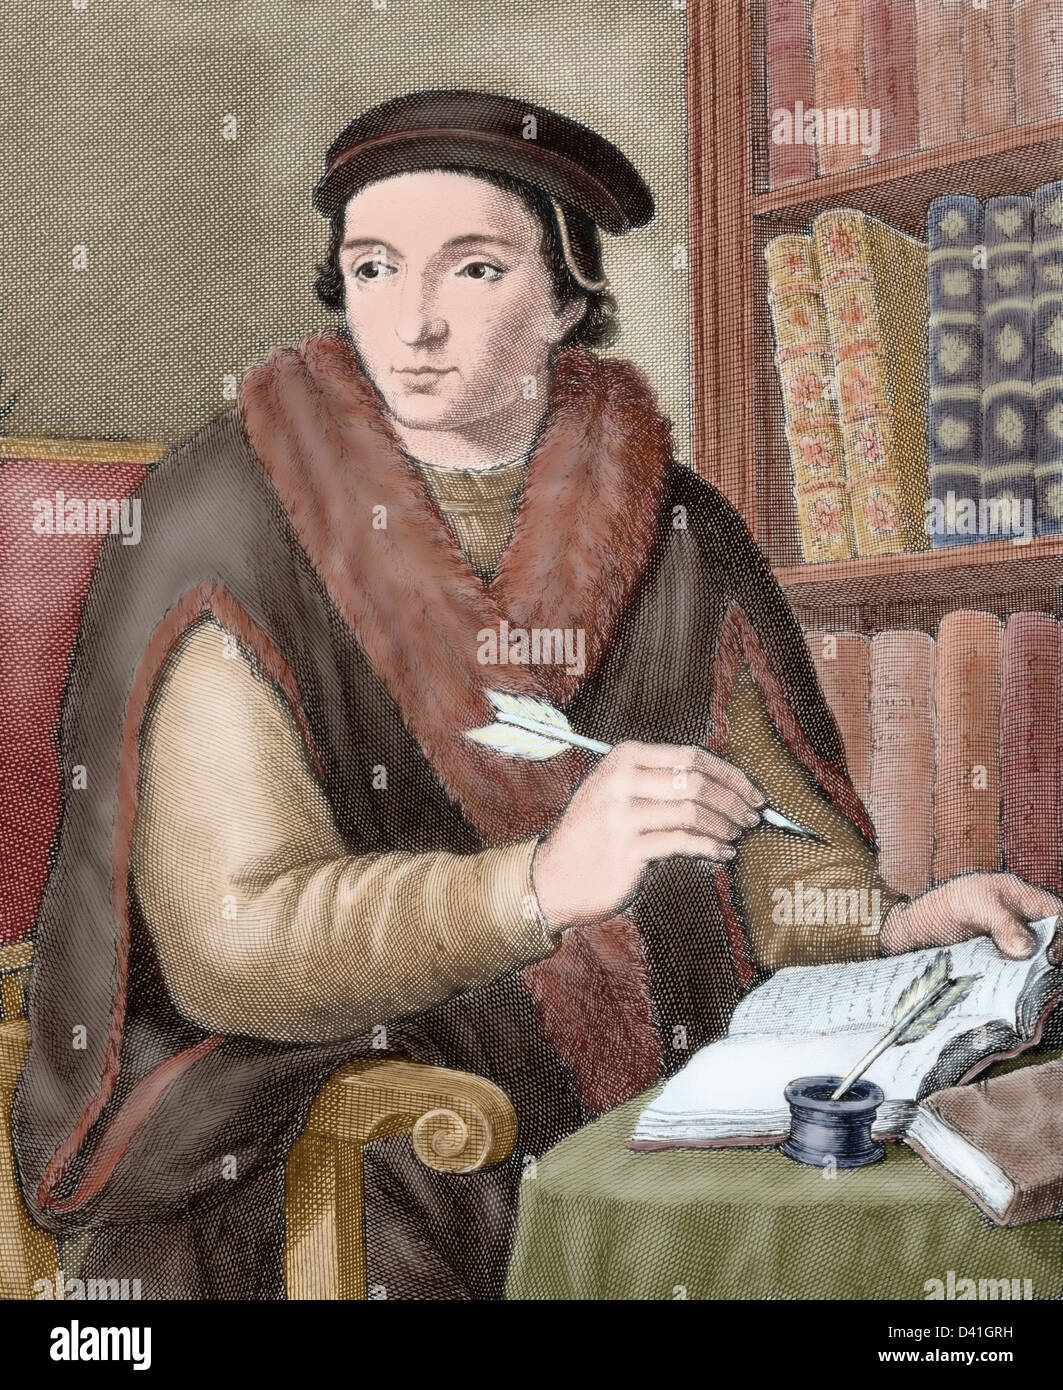 Juan Luis Vives (1493-1540). Valencian scholar and humanist. Colored engraving. Stock Photo